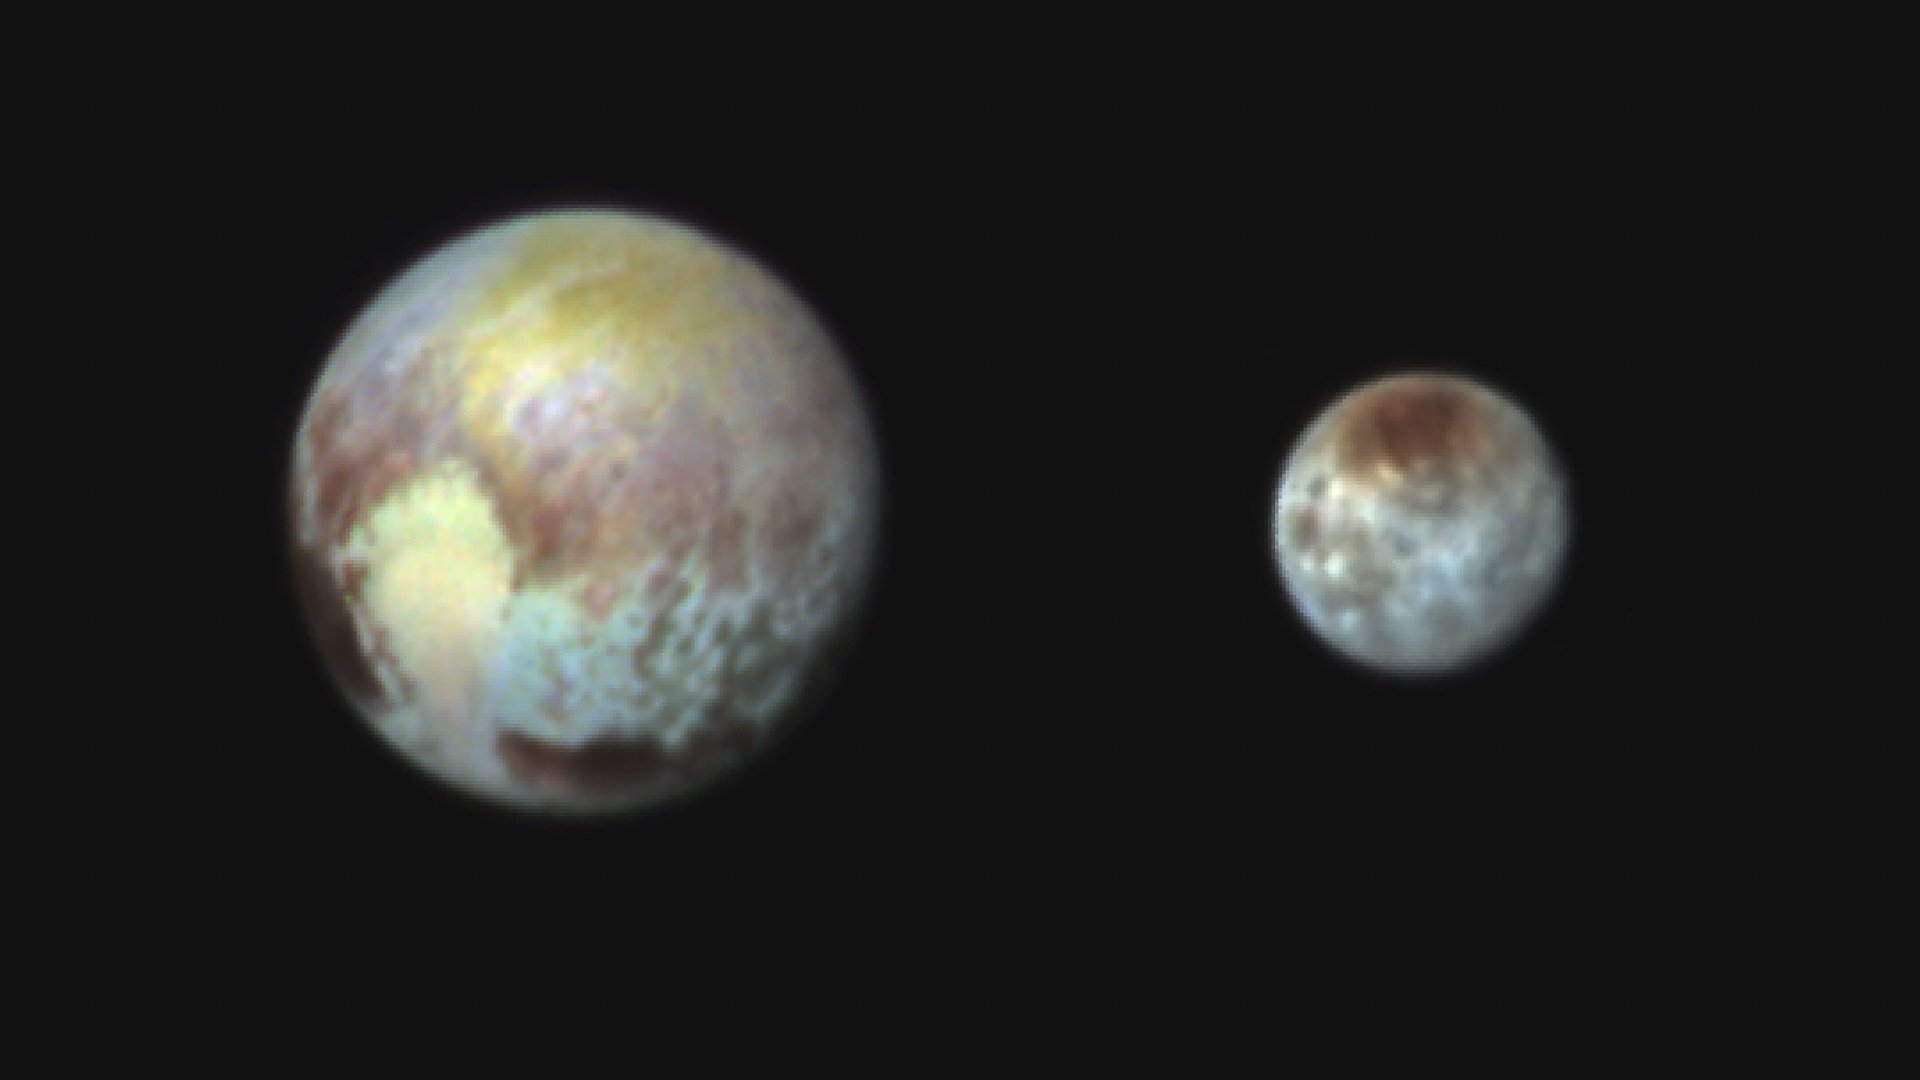 Kerberos Moon Of Plluto: Pluto Unveiled By New Horizons Flyby